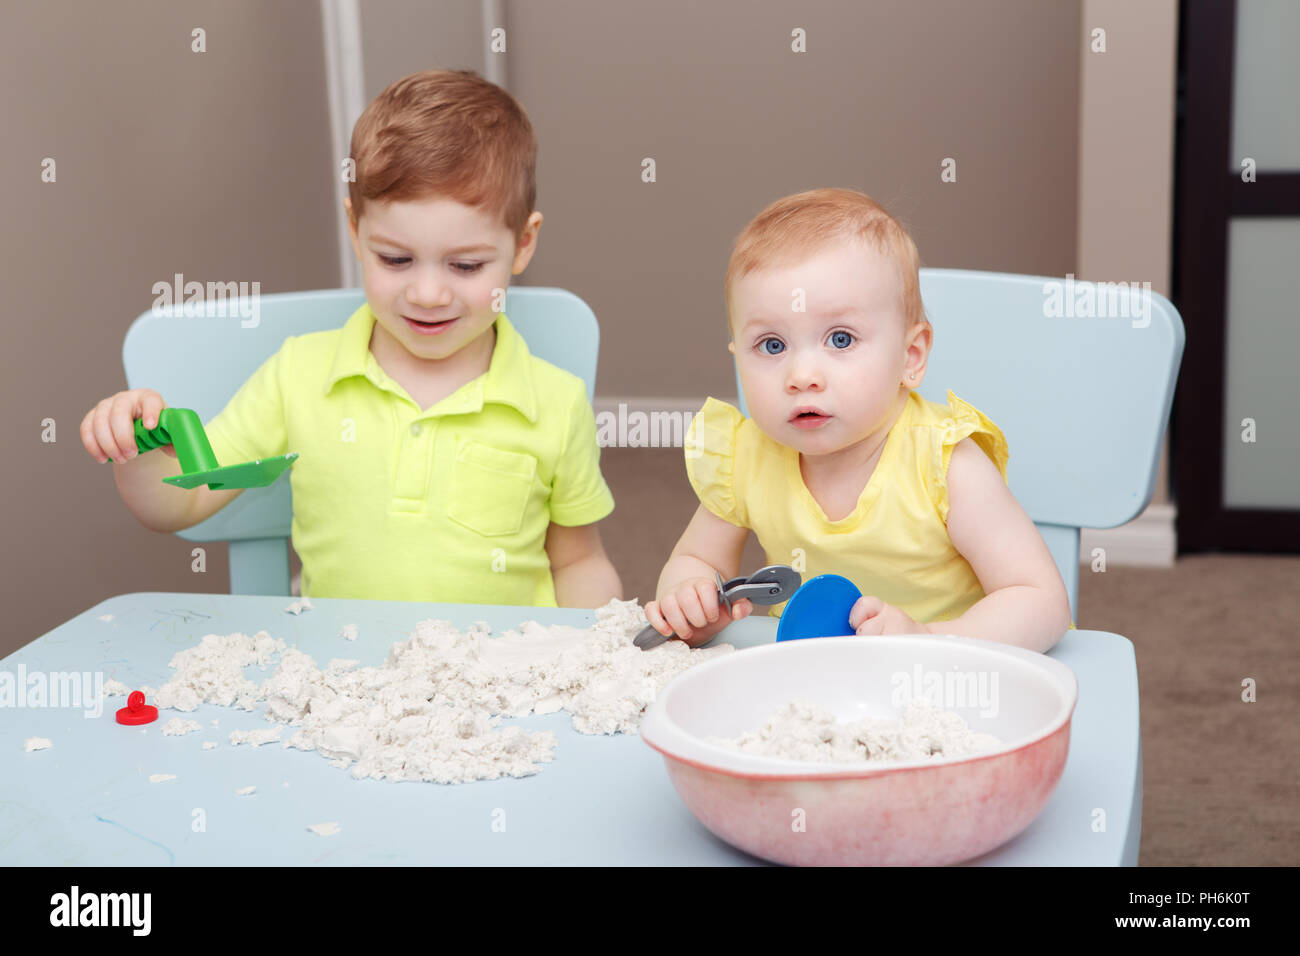 Group portrait of two cute siblings children playing kinetic sand or playdough together in kindergarden. Early creativity brain development concept. L - Stock Image